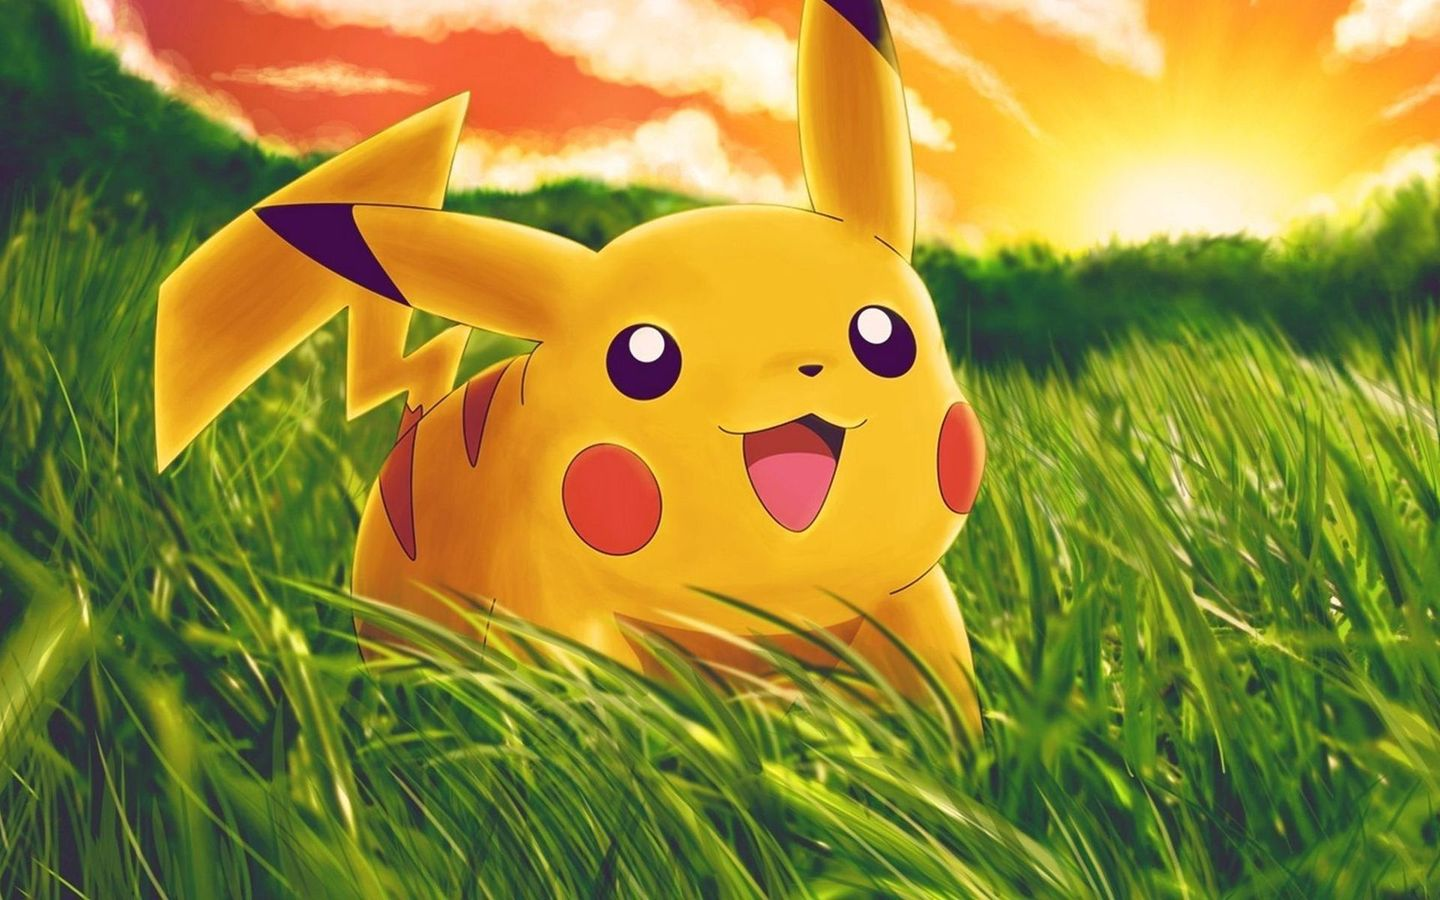 Pokemon HD Wallpaper Picture Image 1440x900